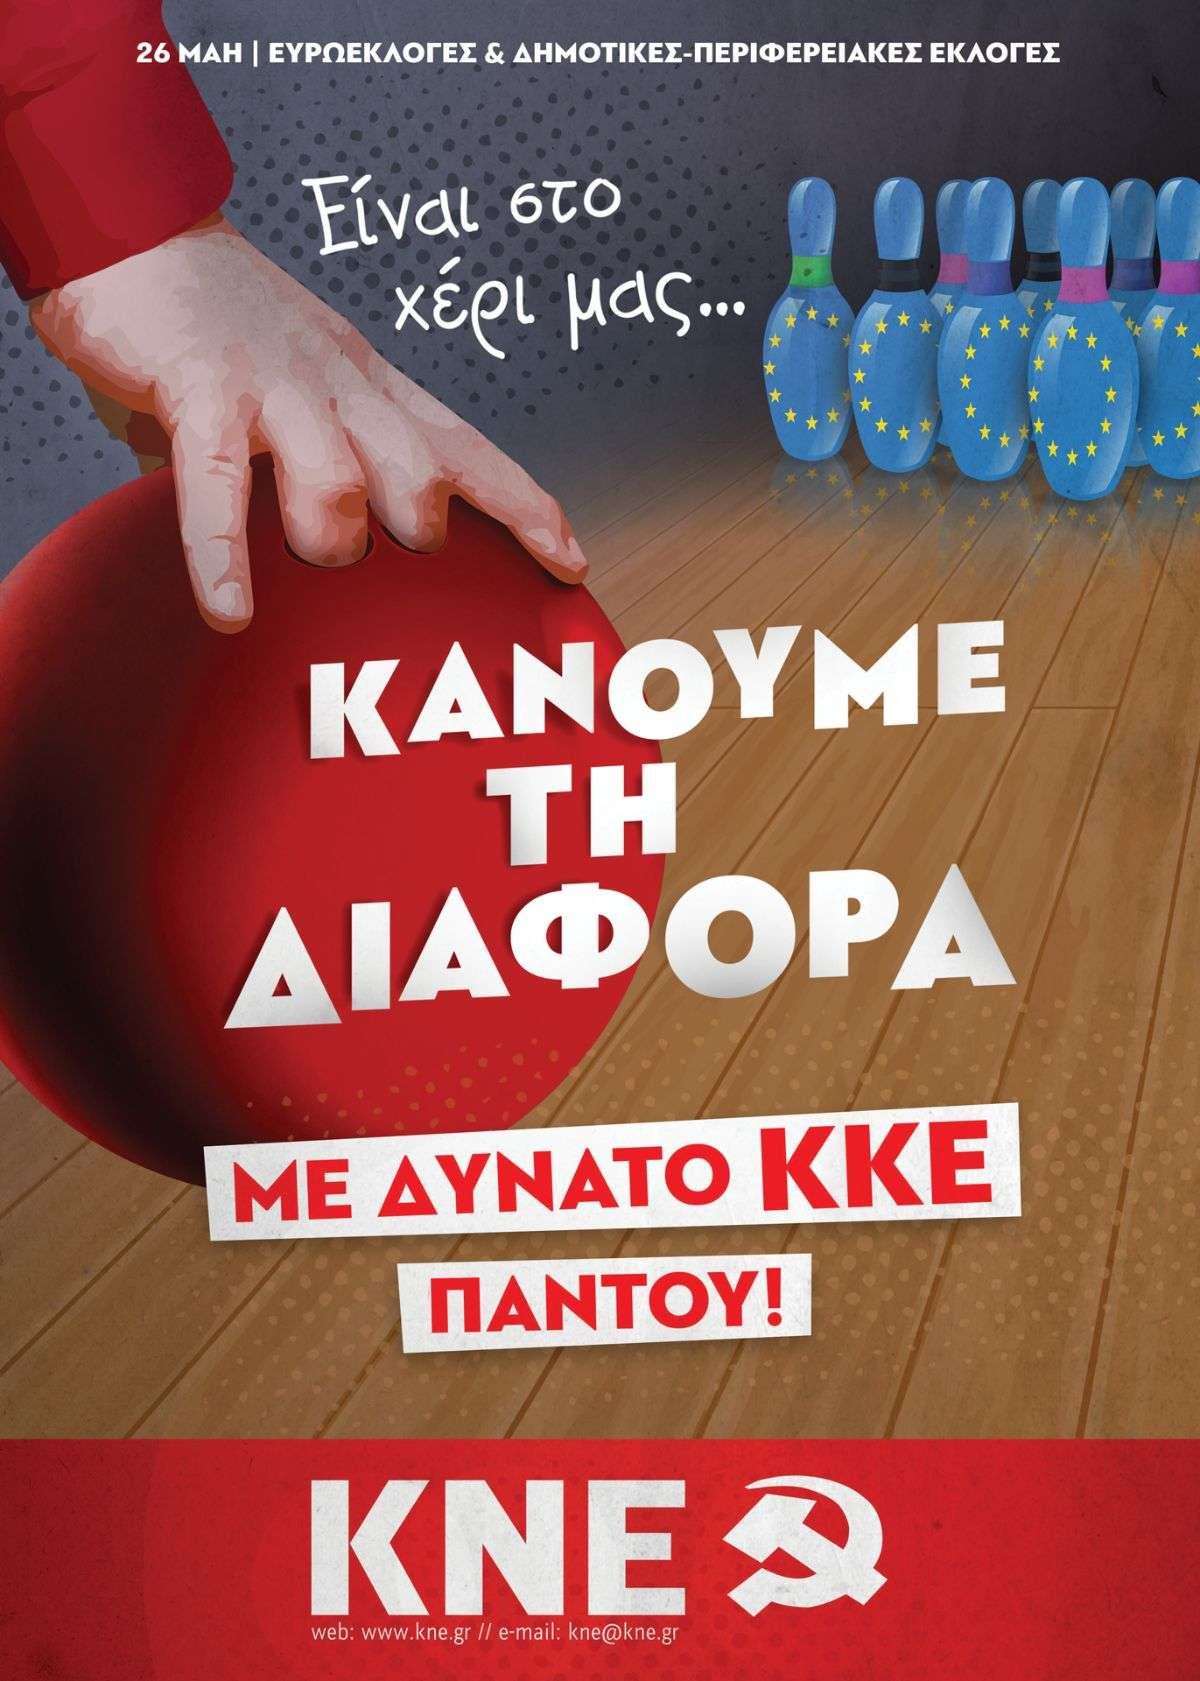 KNE ΚΝΕ poster bowling